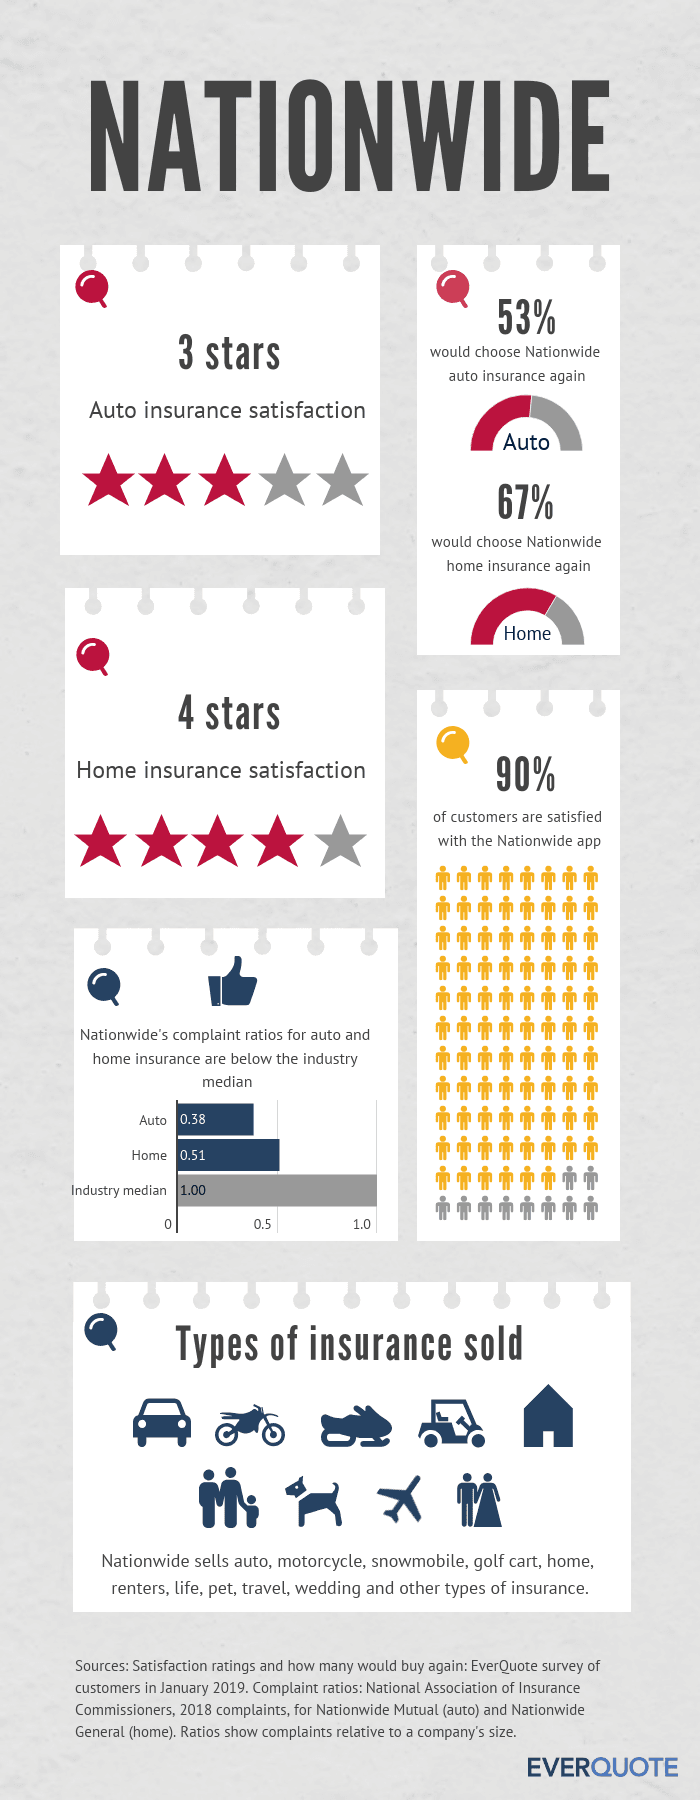 Nationwide Insurance review summary